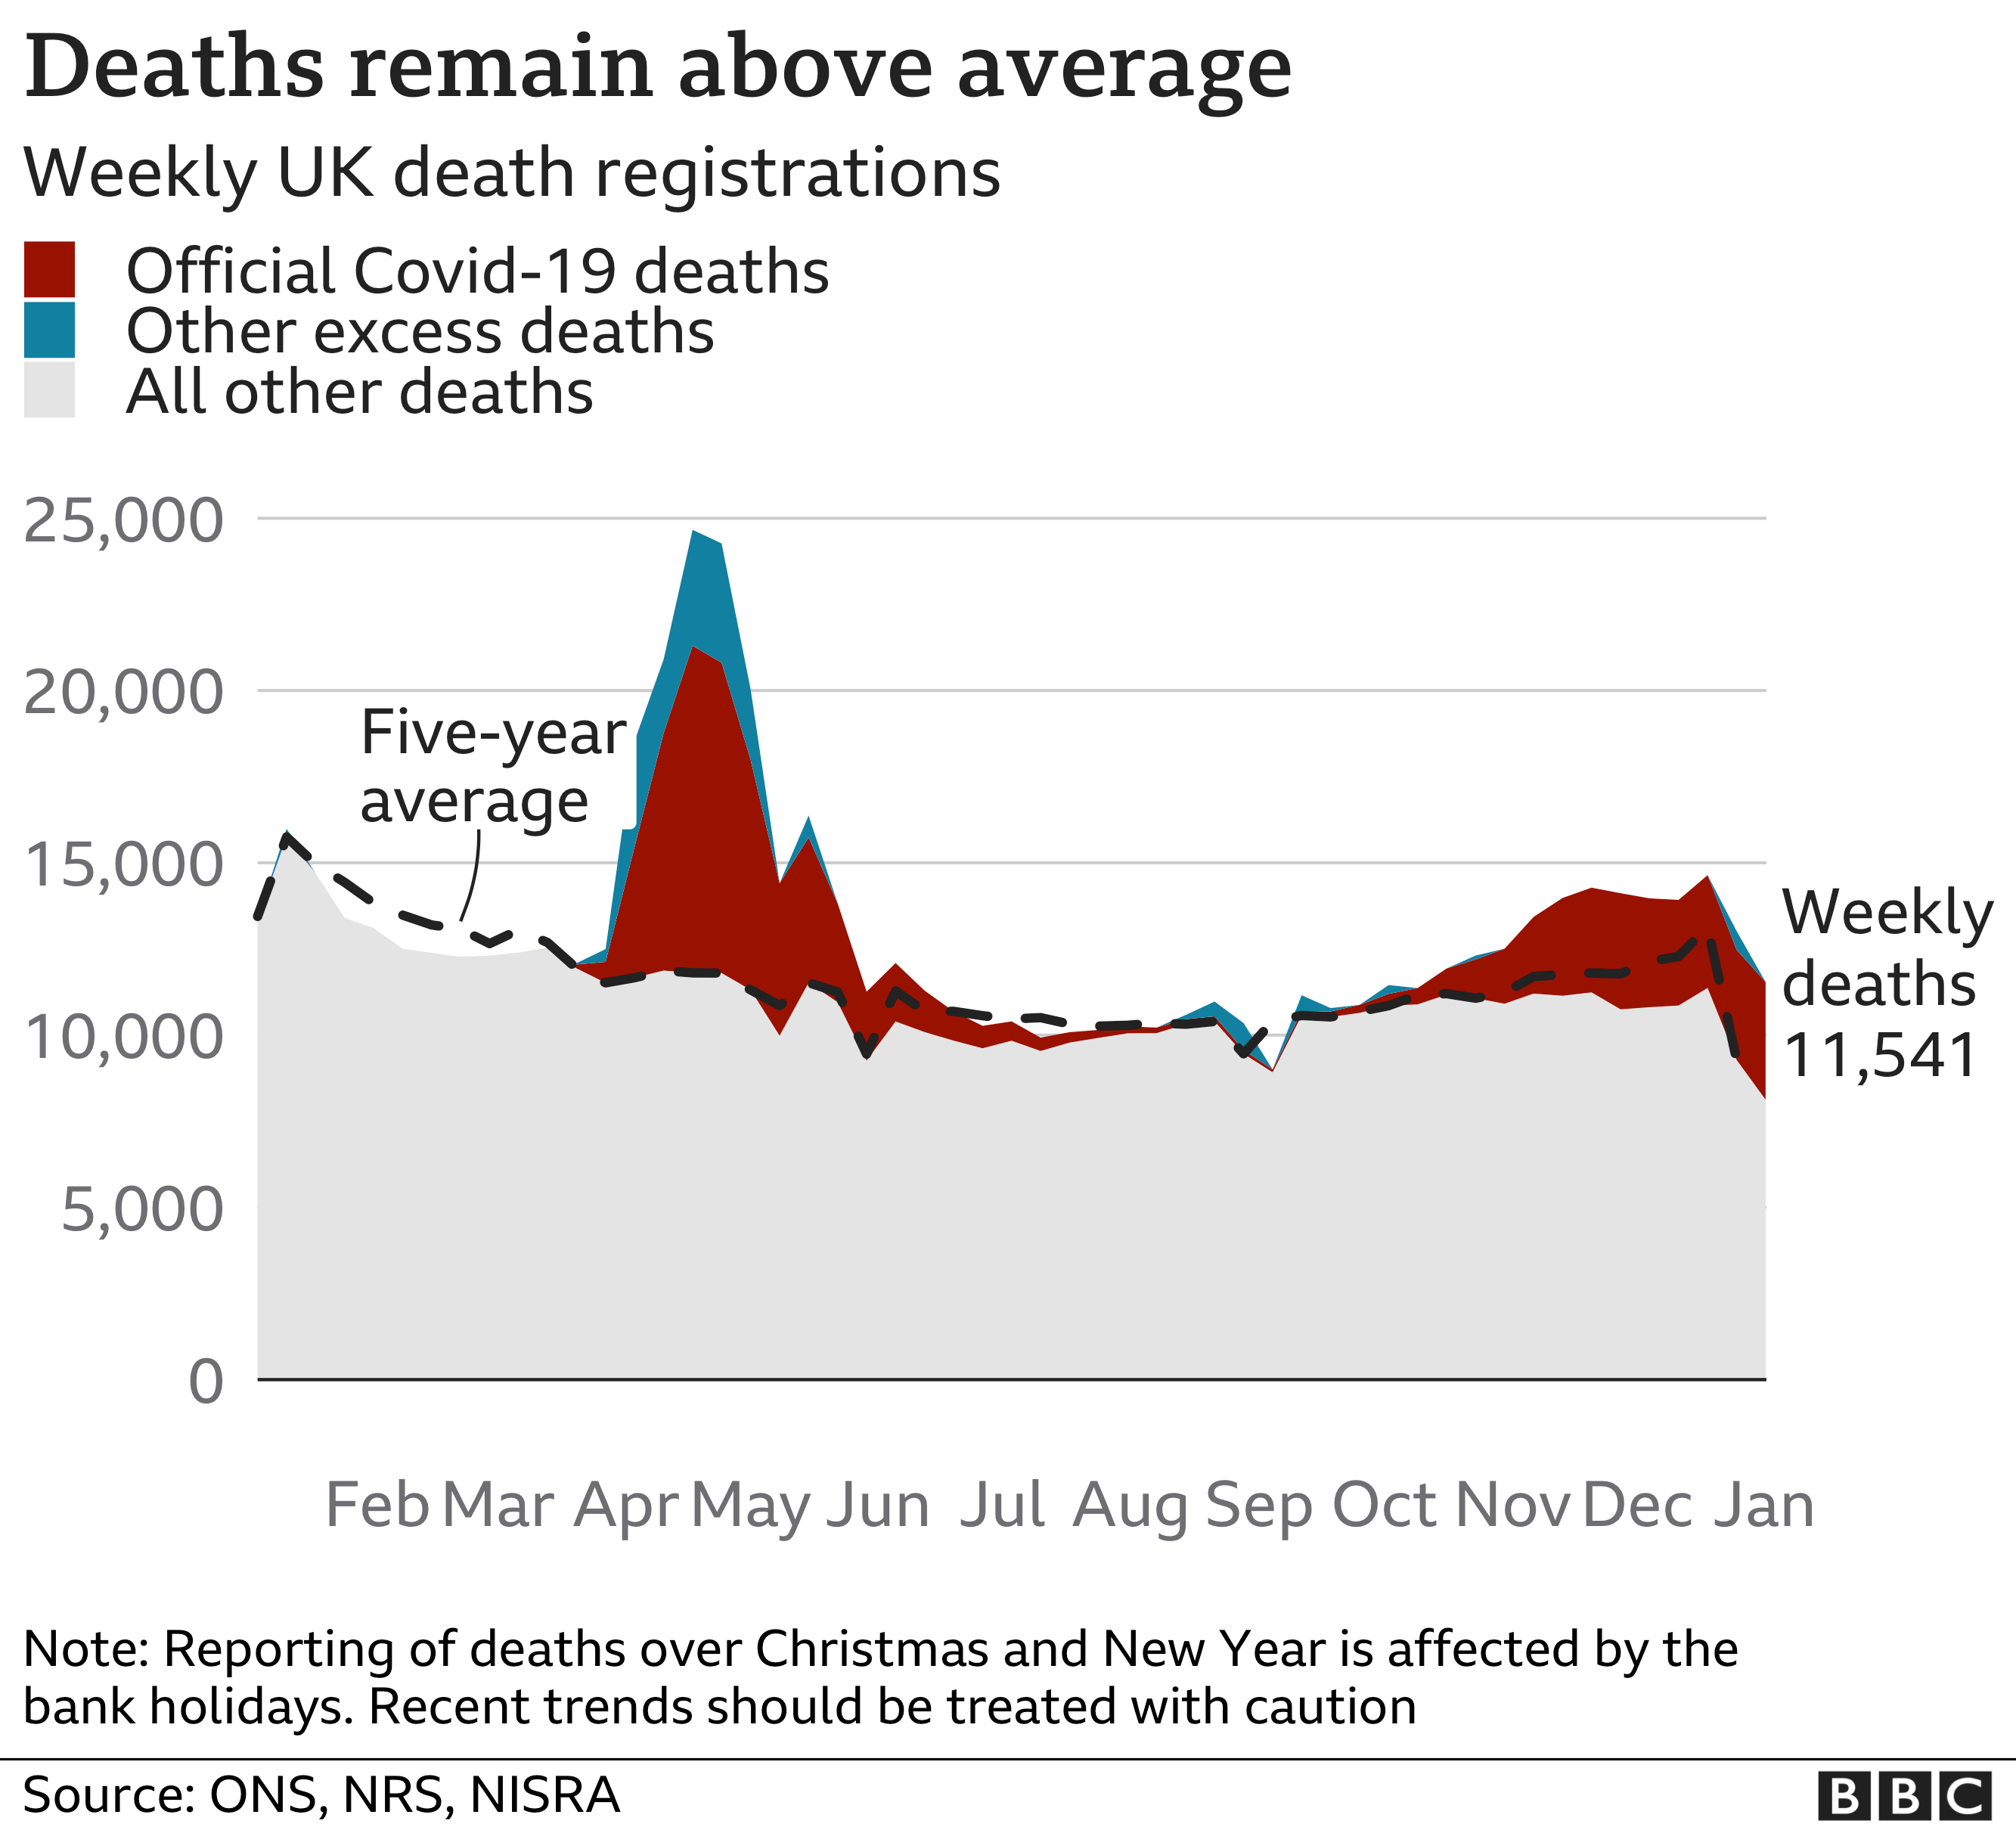 Chart showing UK deaths remain well above average